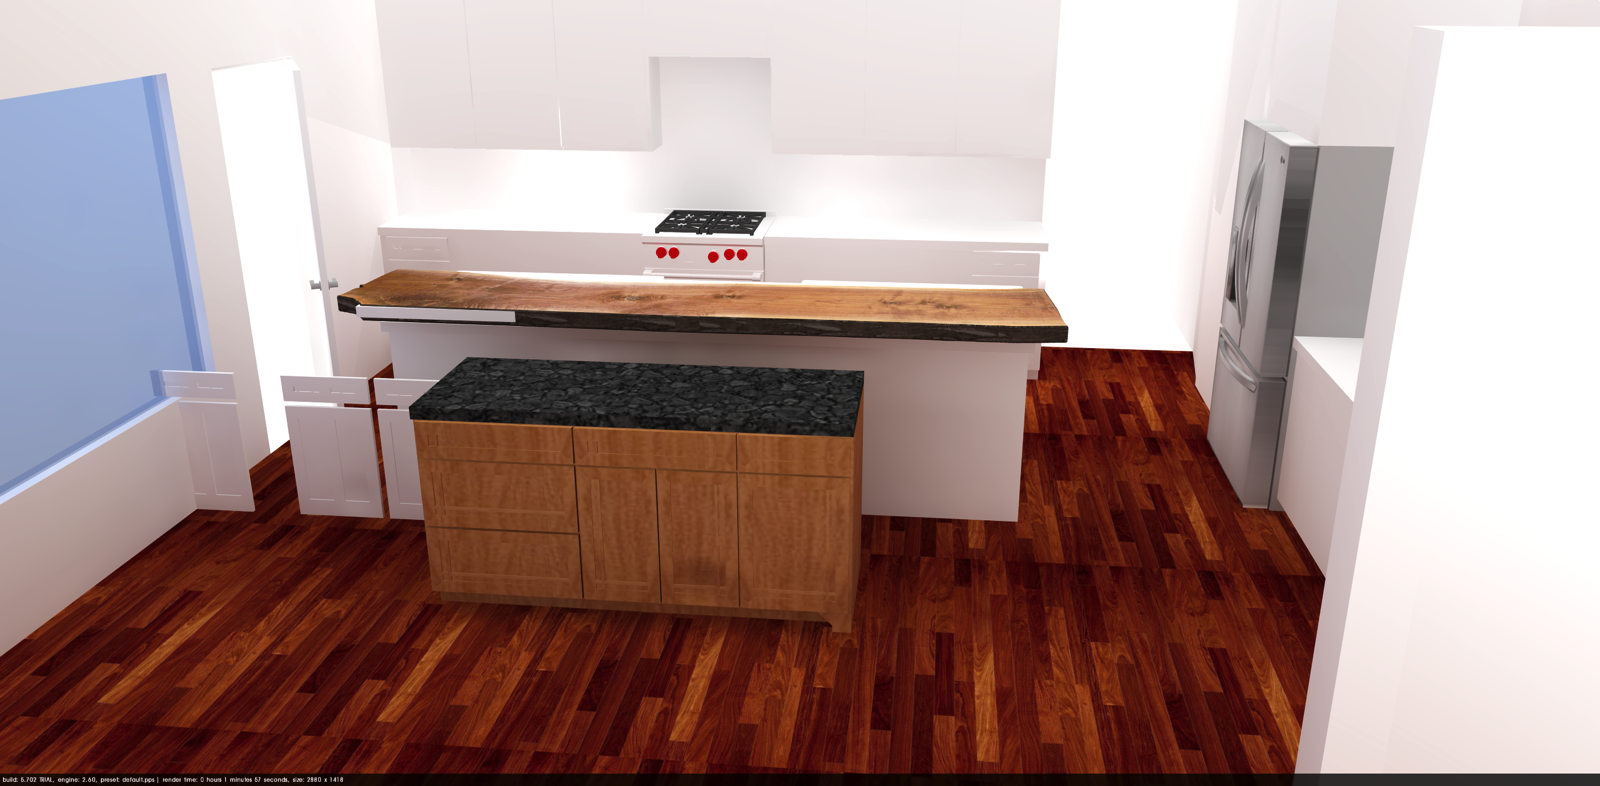 Kitchen Cabinets: Introduction and Sketchup – Corbin's Treehouse